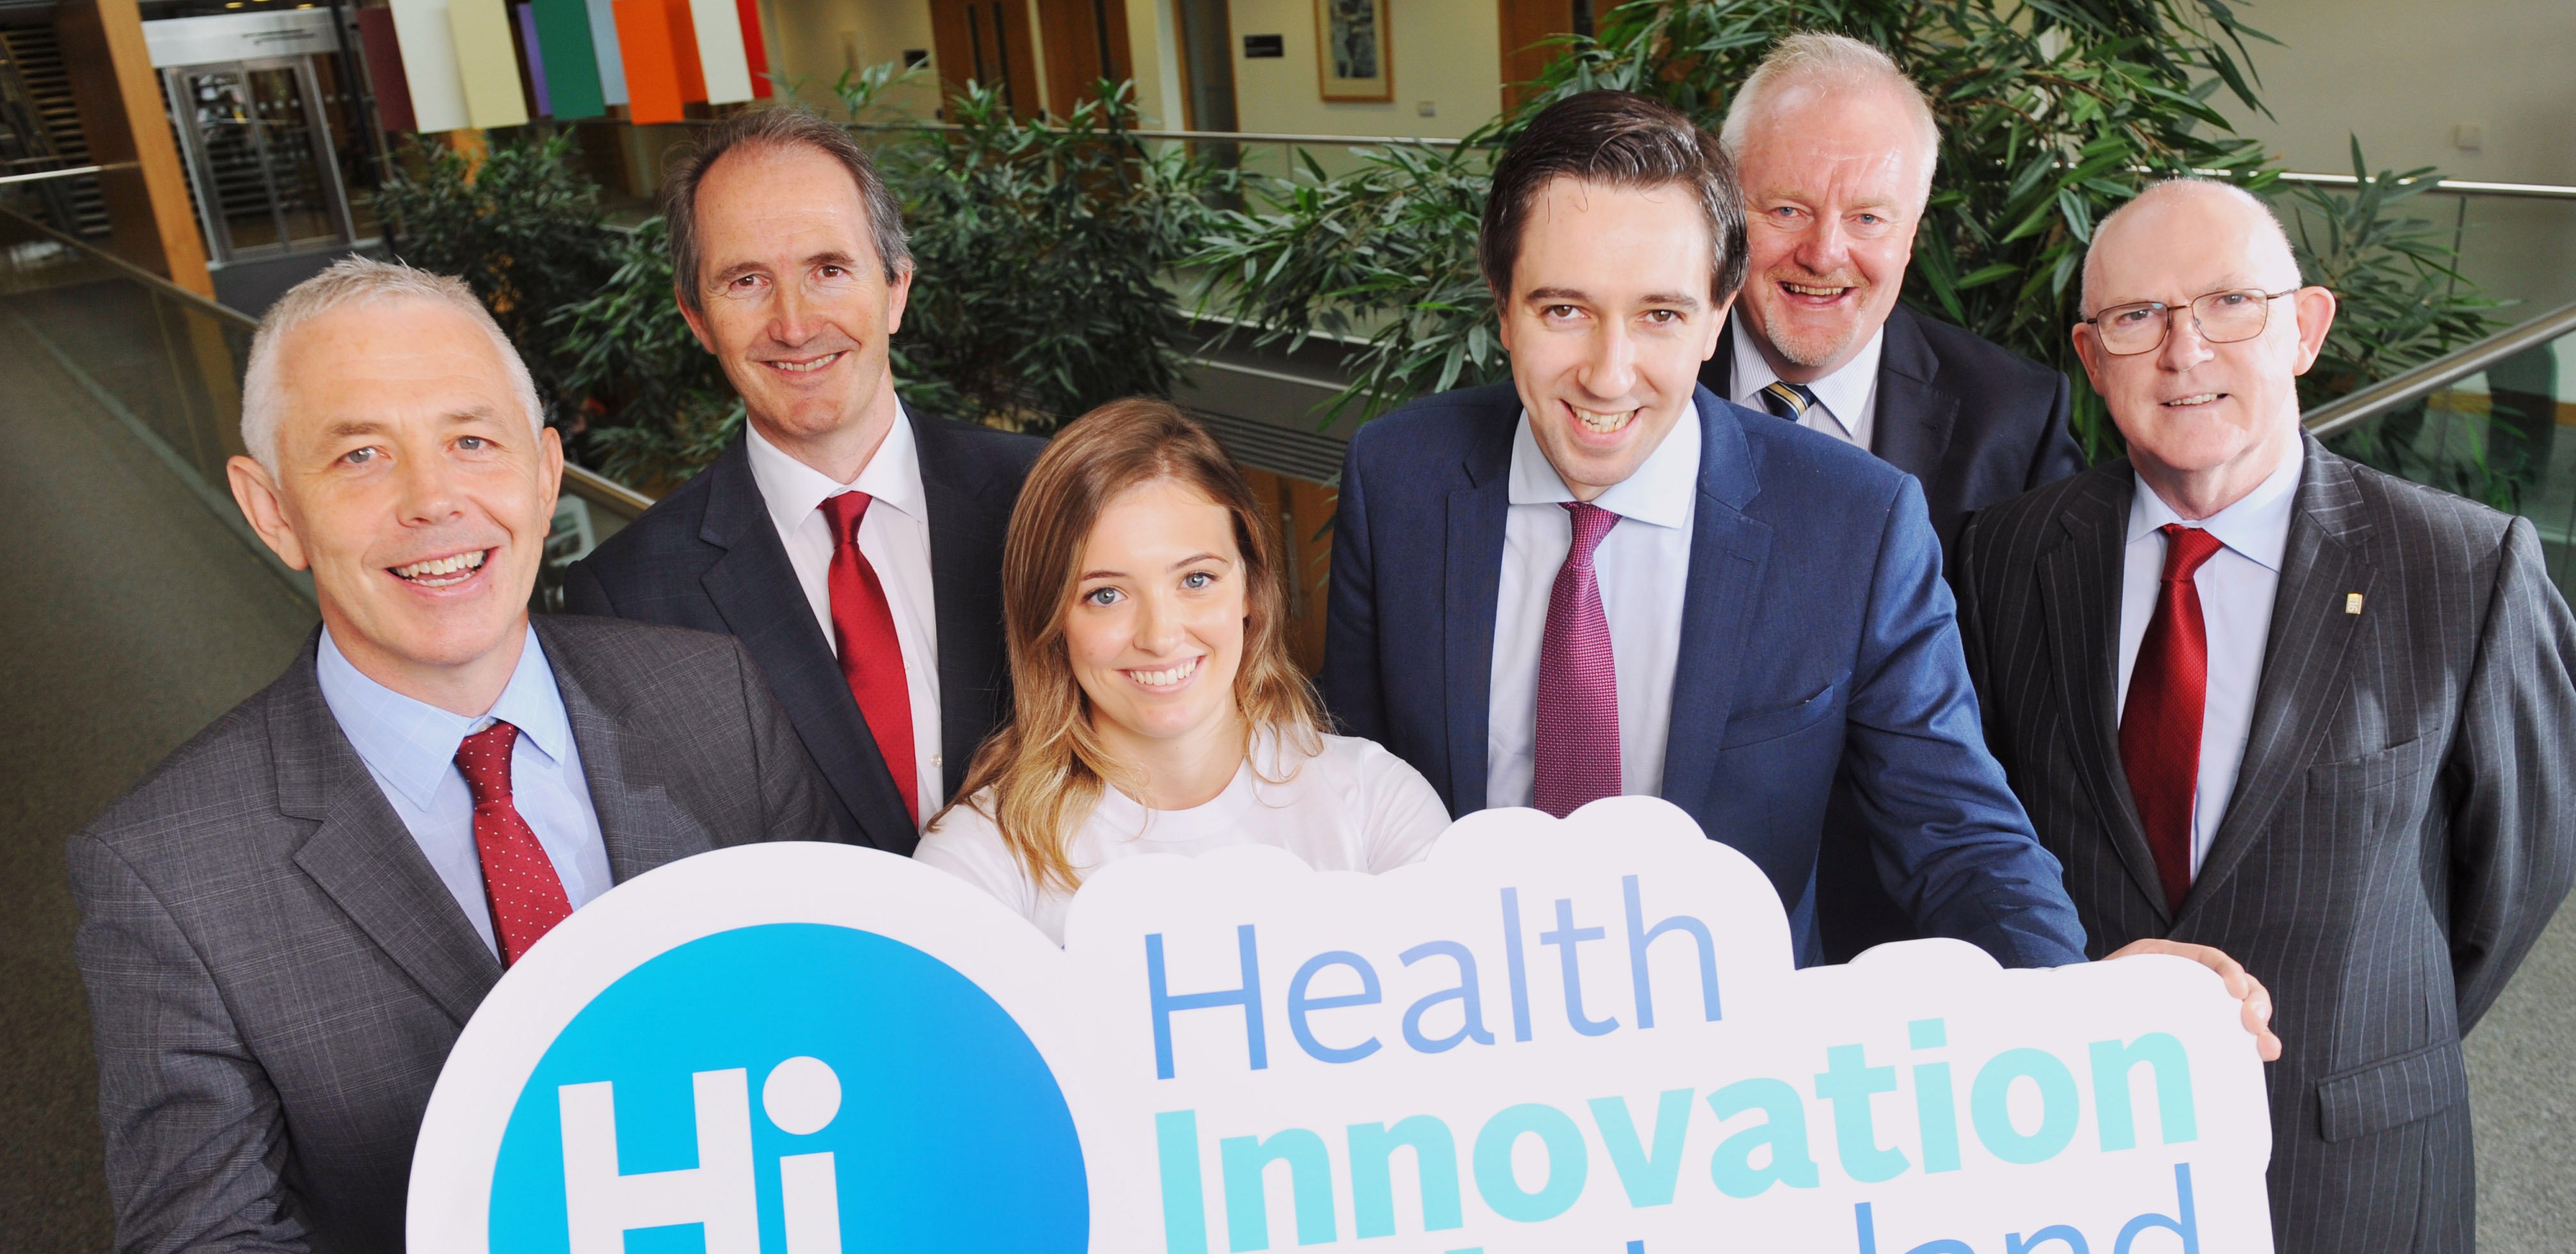 Minister launches Health Innovation Hub Ireland at UCC